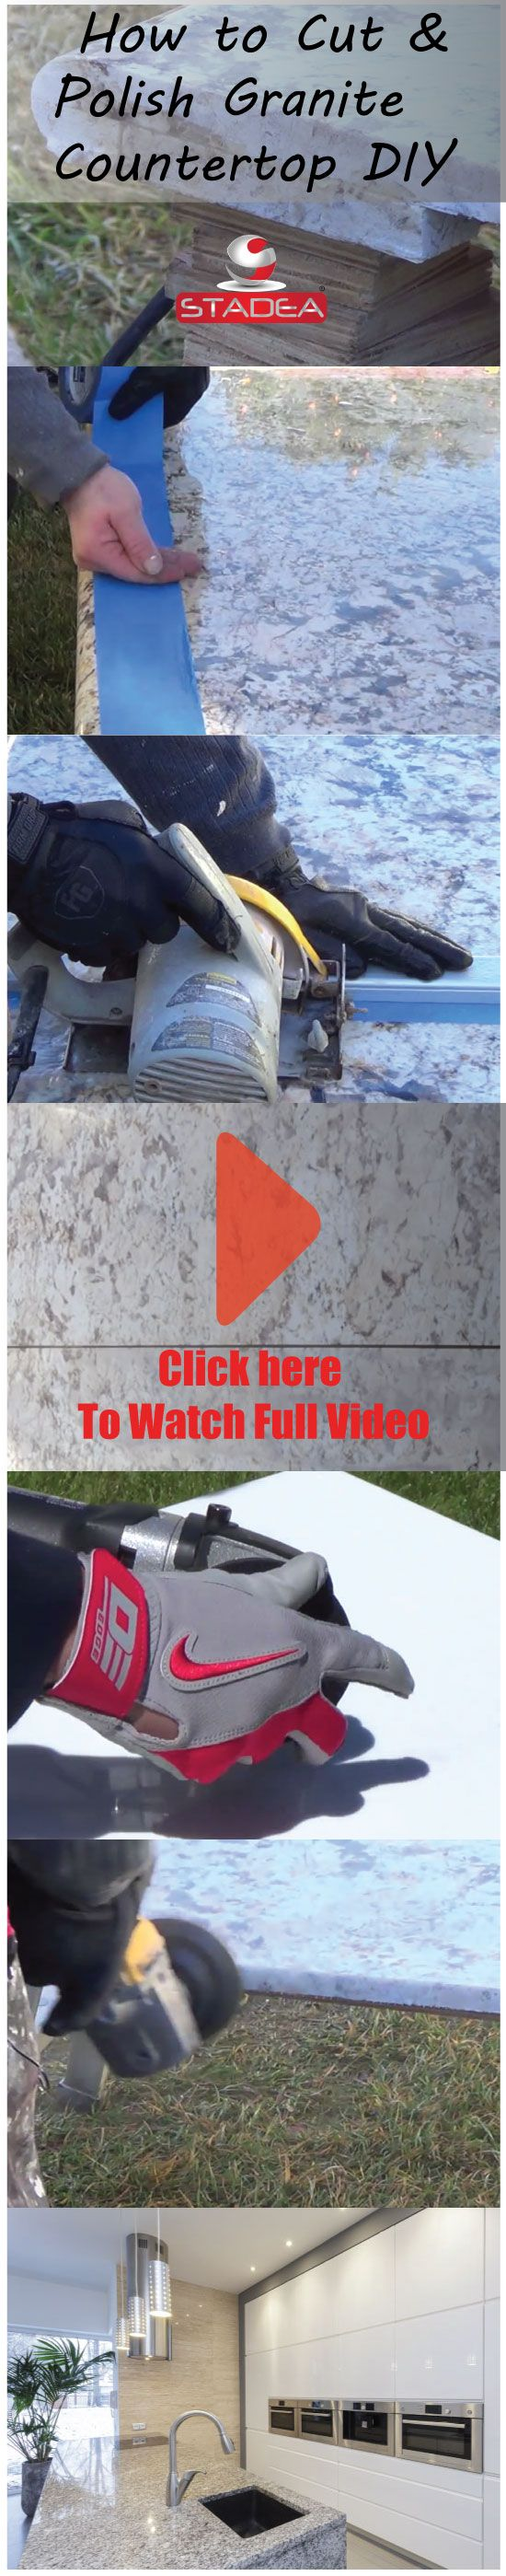 Shopnsavemart.com demonstrates How to Cut And Polish Granite Countertop DIY. Step to step DIY video demonstrates cutting of granite slab using saw blades, polishing the edges using stadea dry diamond polishing pads.